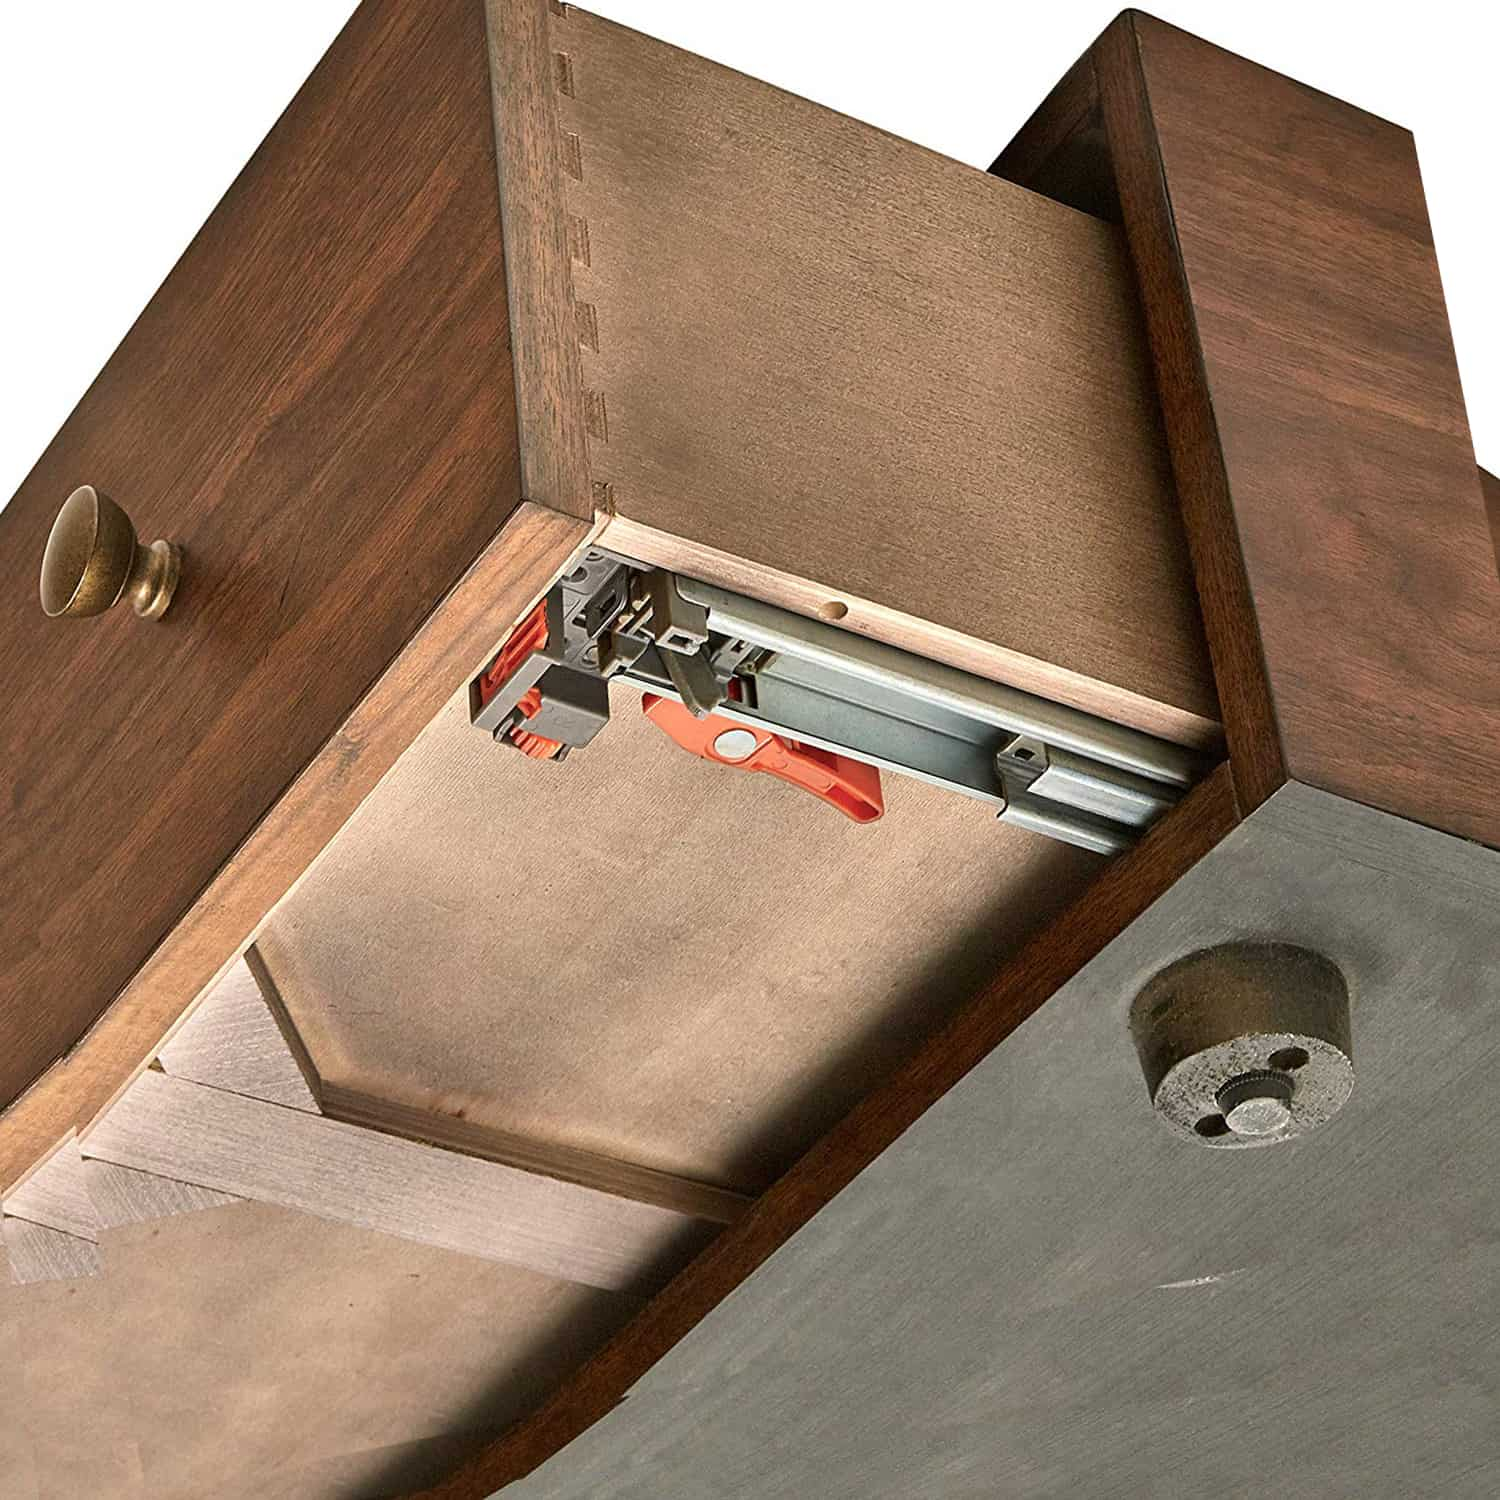 What is the Best Way to Store Guns Without a Safe?